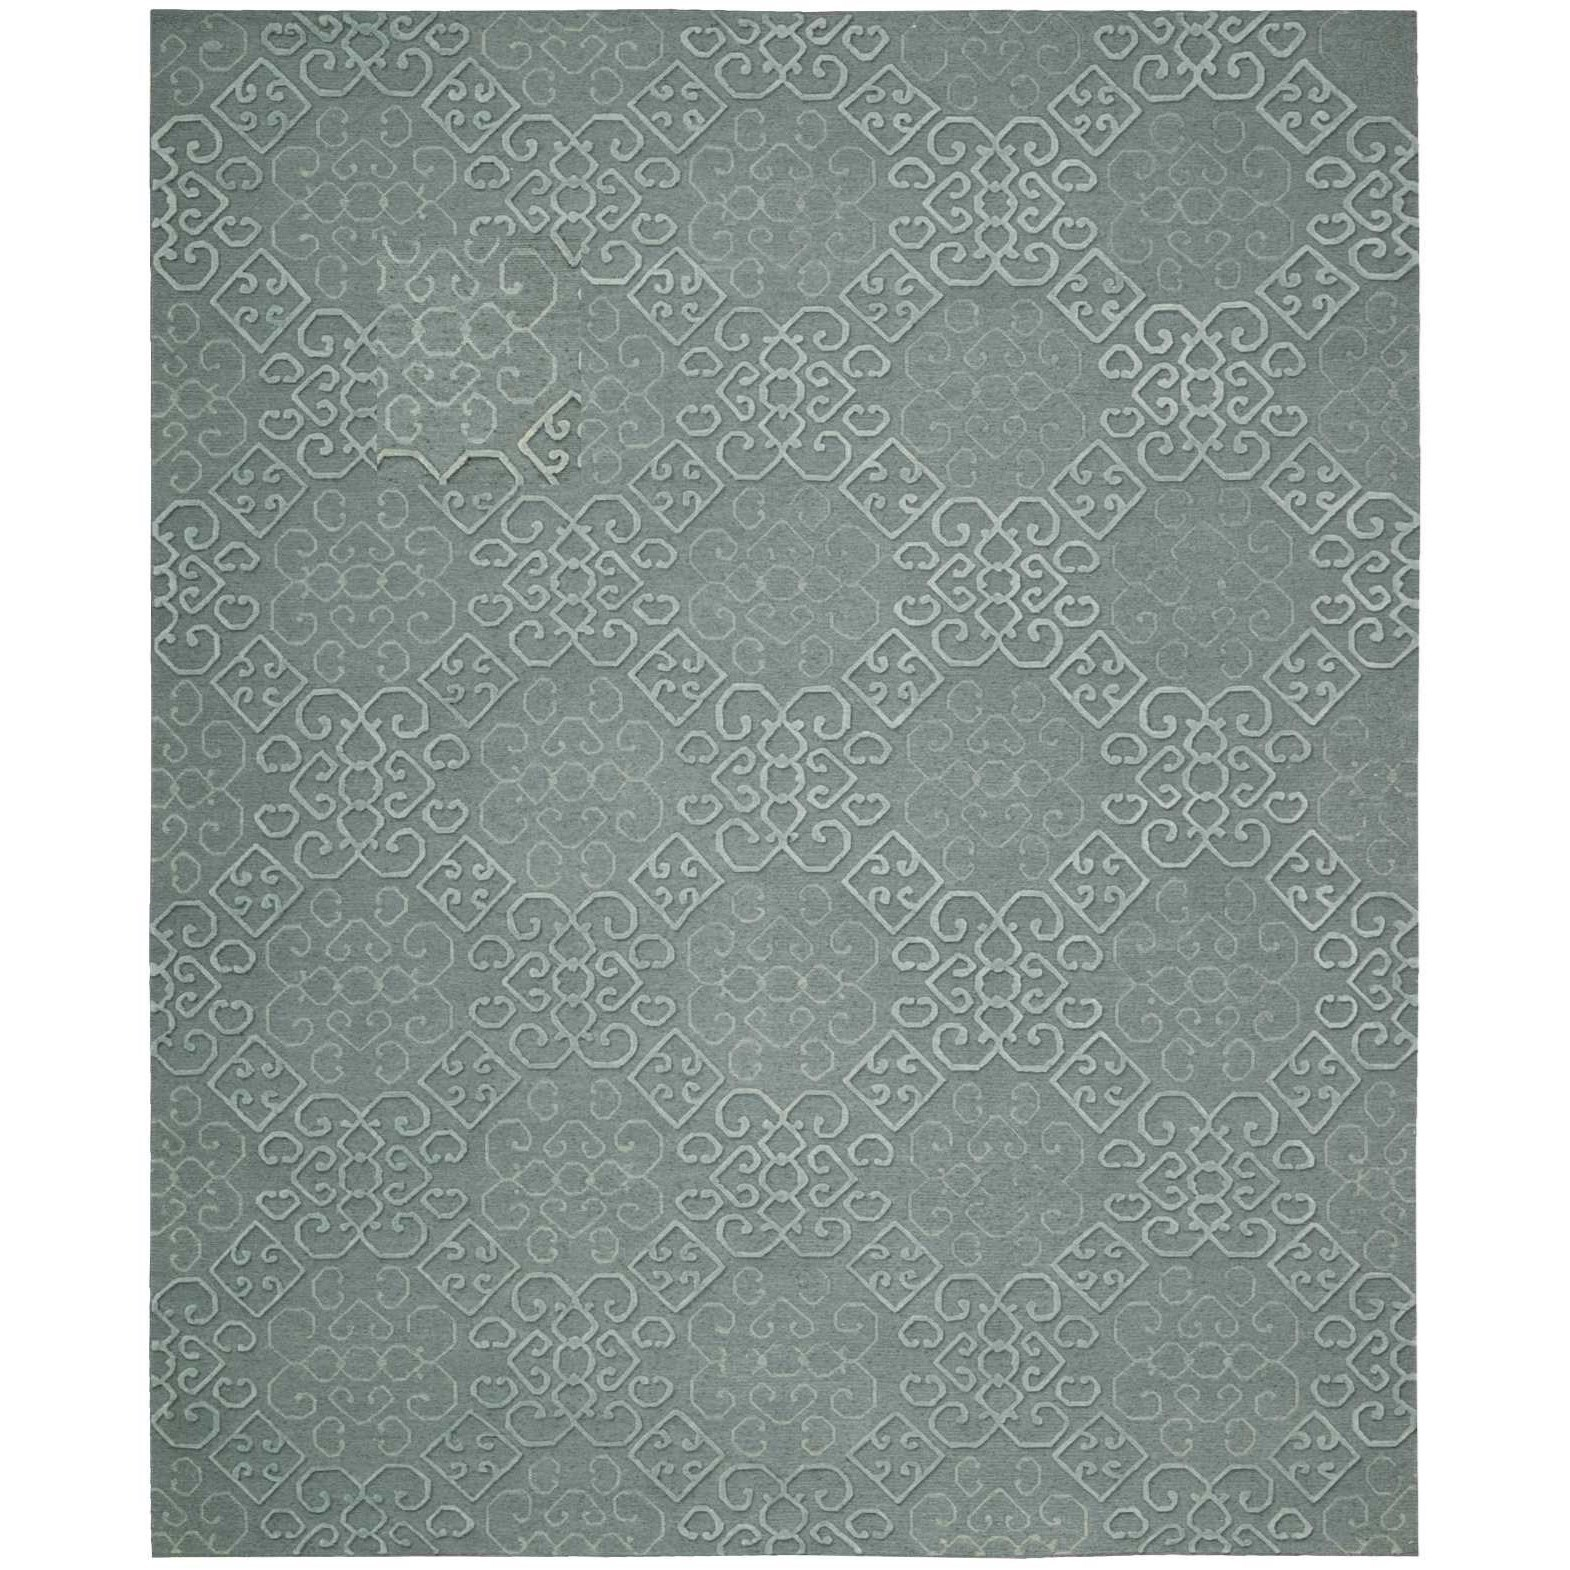 "Ambrose 9'9"" x 13'9"" Slate Rectangle Rug by Nourison at Sprintz Furniture"